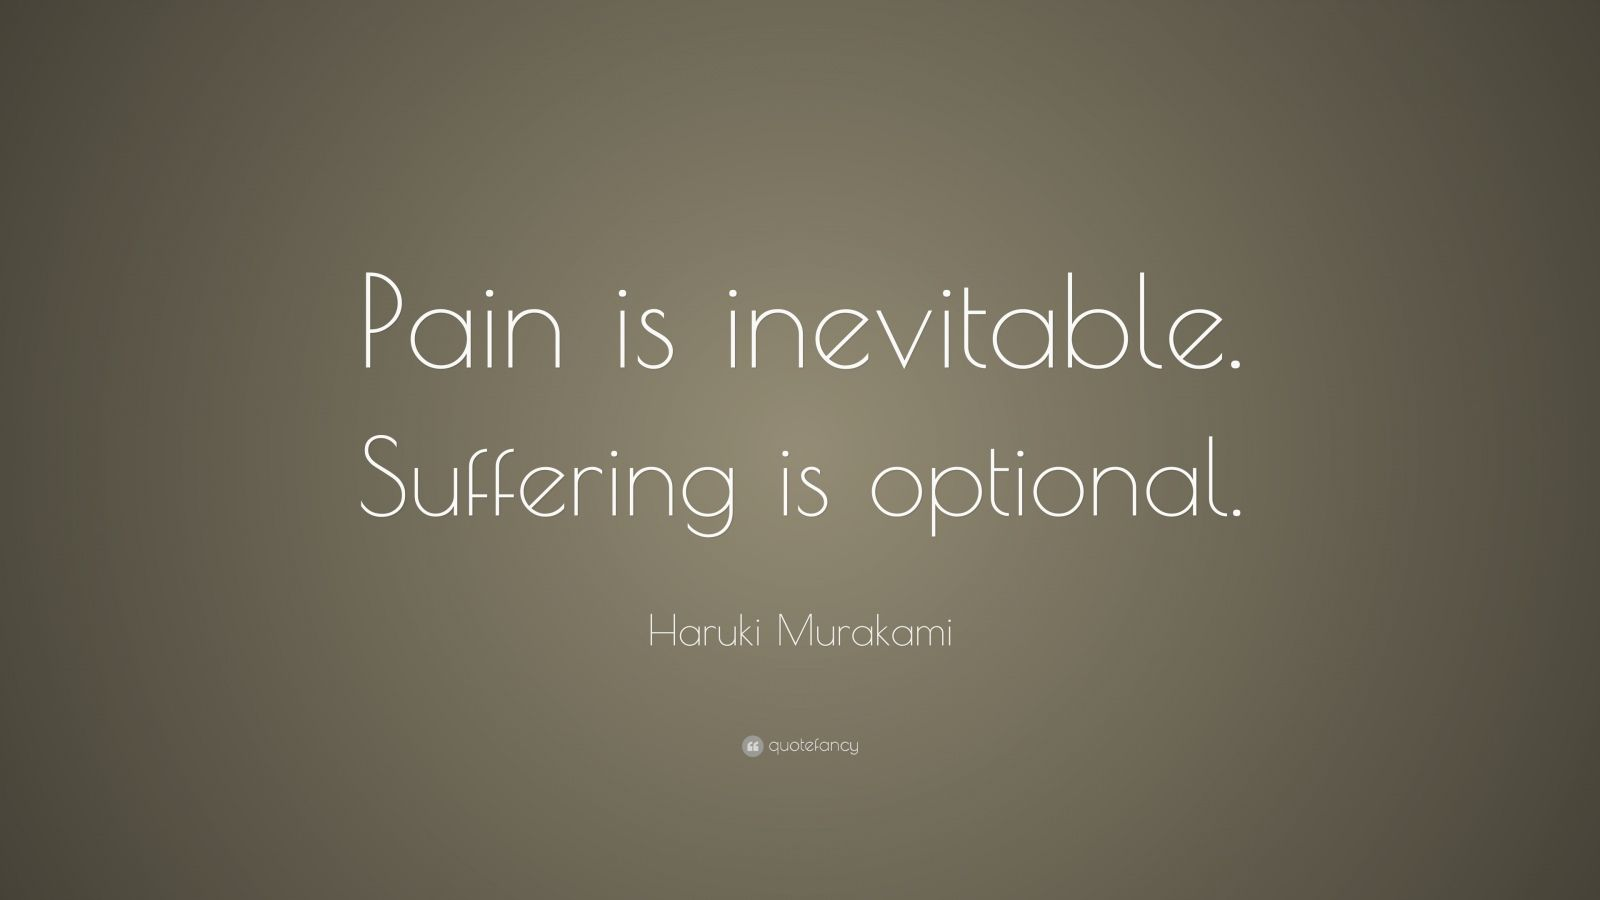 Quotes On Success Wallpapers Haruki Murakami Quote Pain Is Inevitable Suffering Is